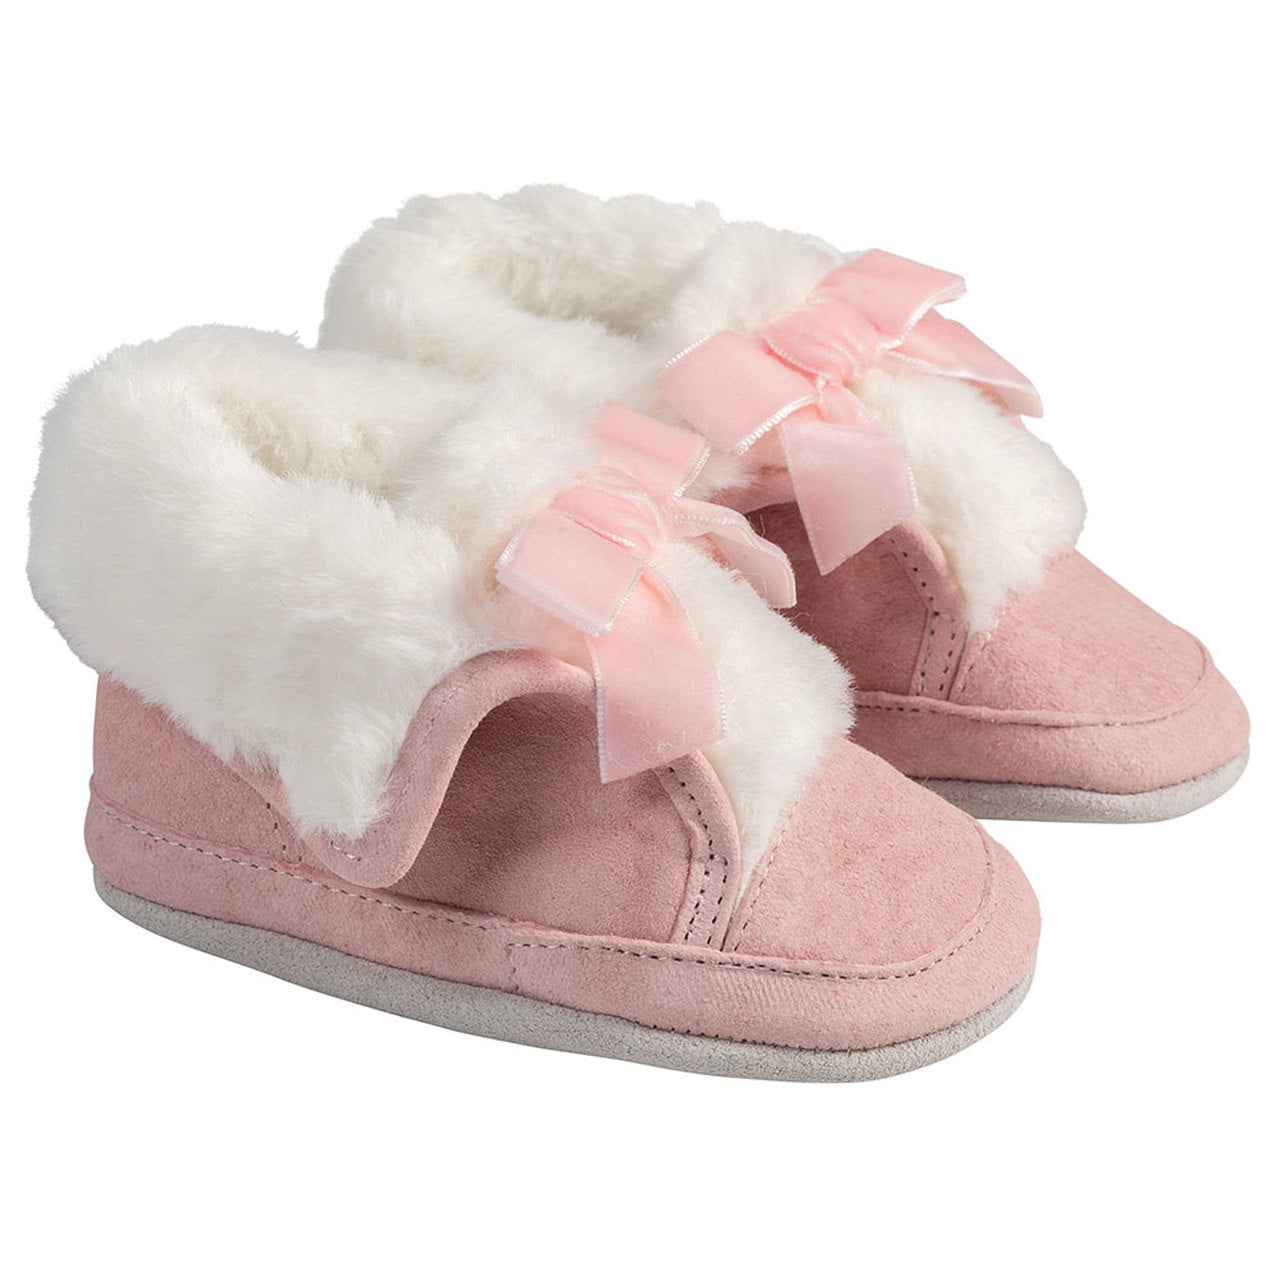 Pink suede robeez boot with faux fur lining and pink bow